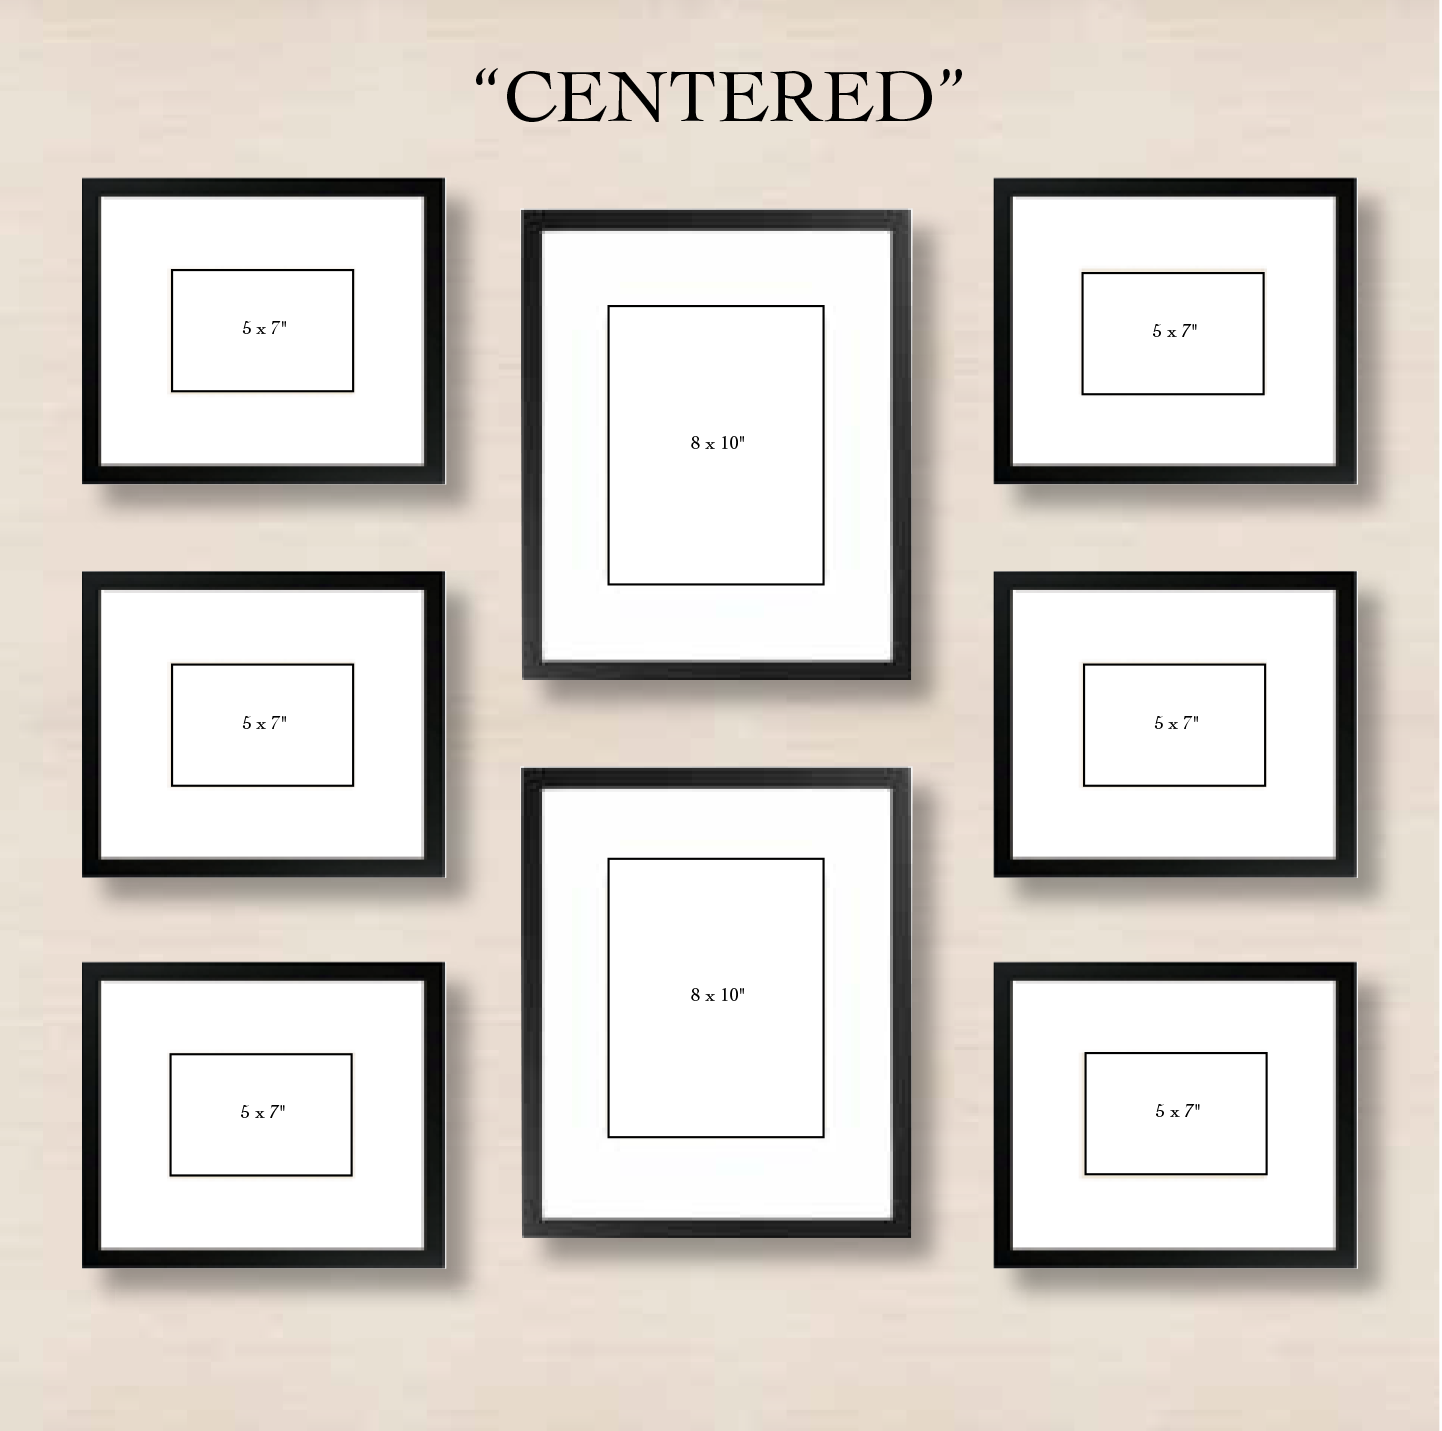 6 ways to set up a gallery wall minimal layouts and gallery wall 6 ways to set up a gallery wall centered this simple layout requires minimal effort just choose one or two frames to center and align the left and right jeuxipadfo Gallery